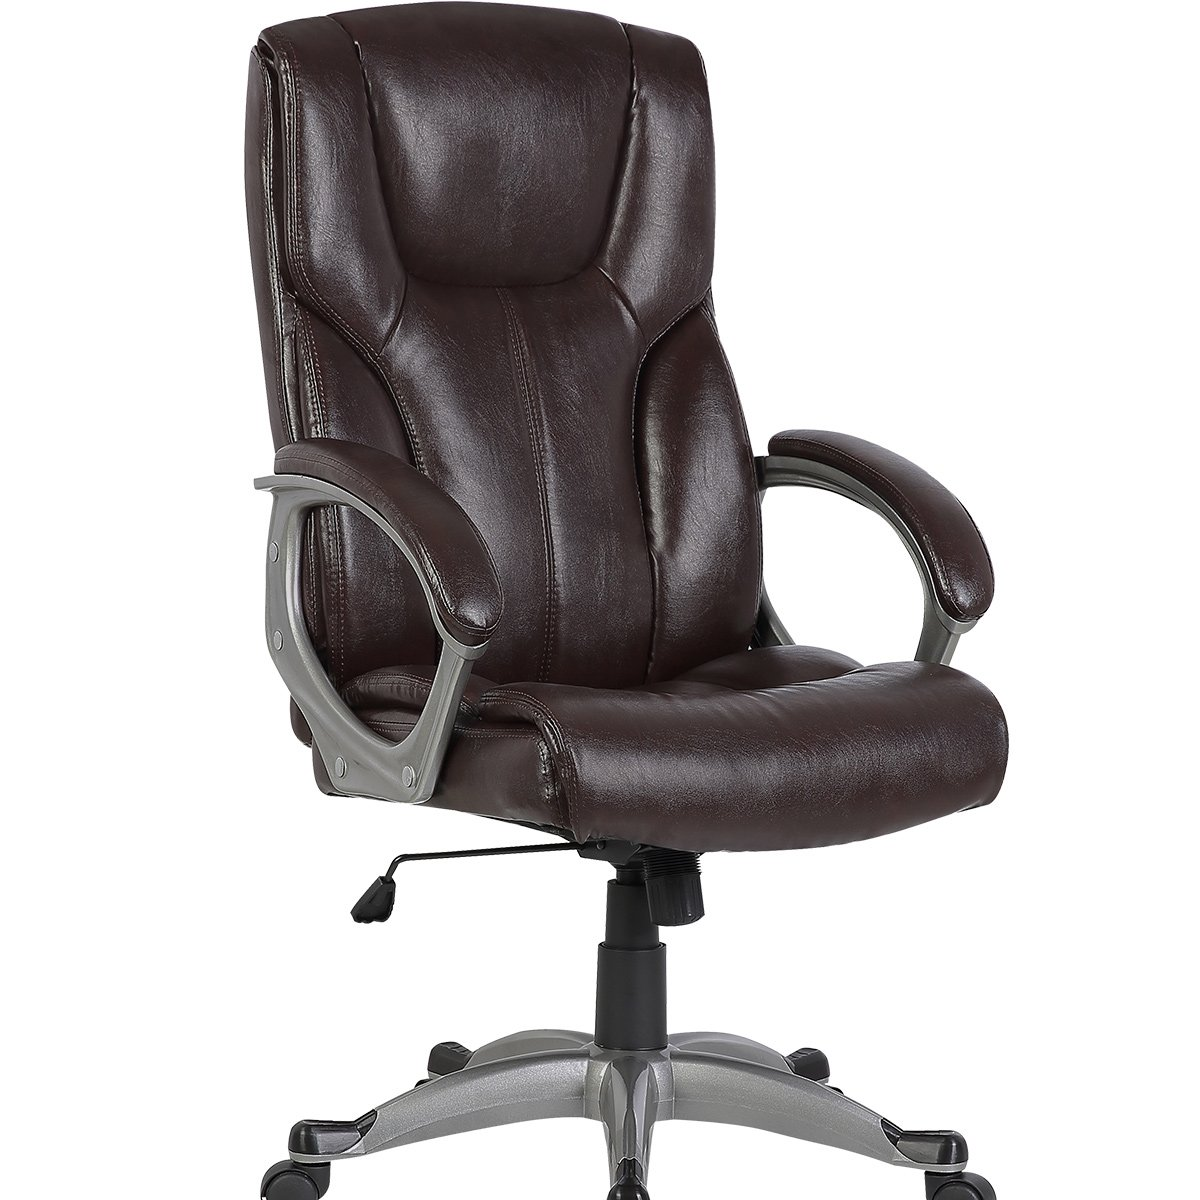 YAMASORO High Back Leather Office Chair - Adjustable Tilt Angle and Seat Height Executive Computer Desk Chair, Thick Padding For Comfort and Ergonomic Design For Lumbar Support, 300lbs